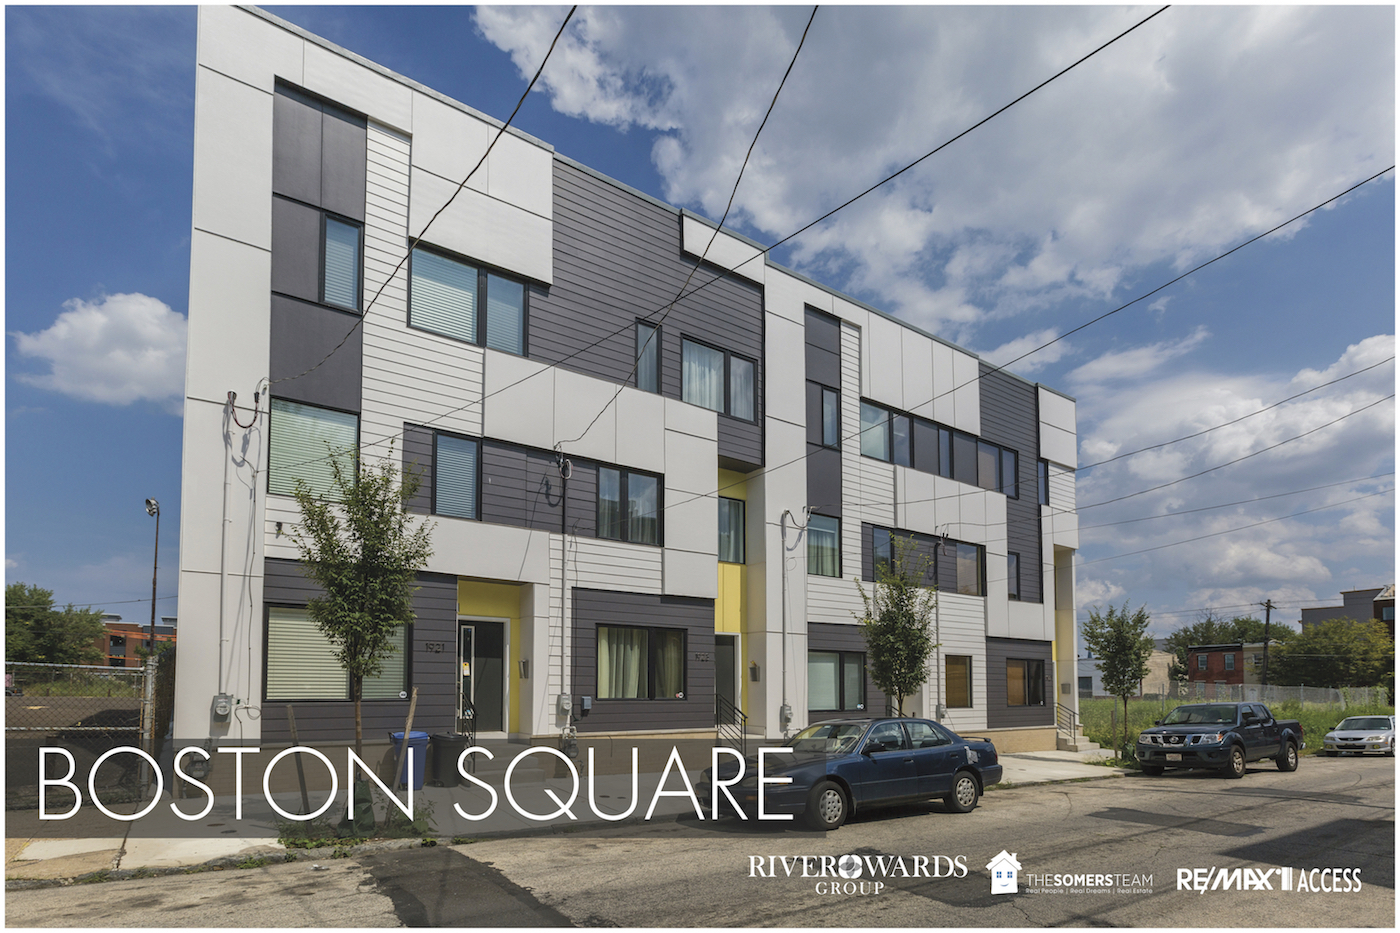 East Kensington 19125 - Eight Luxury New Construction HomesSOLD OUT